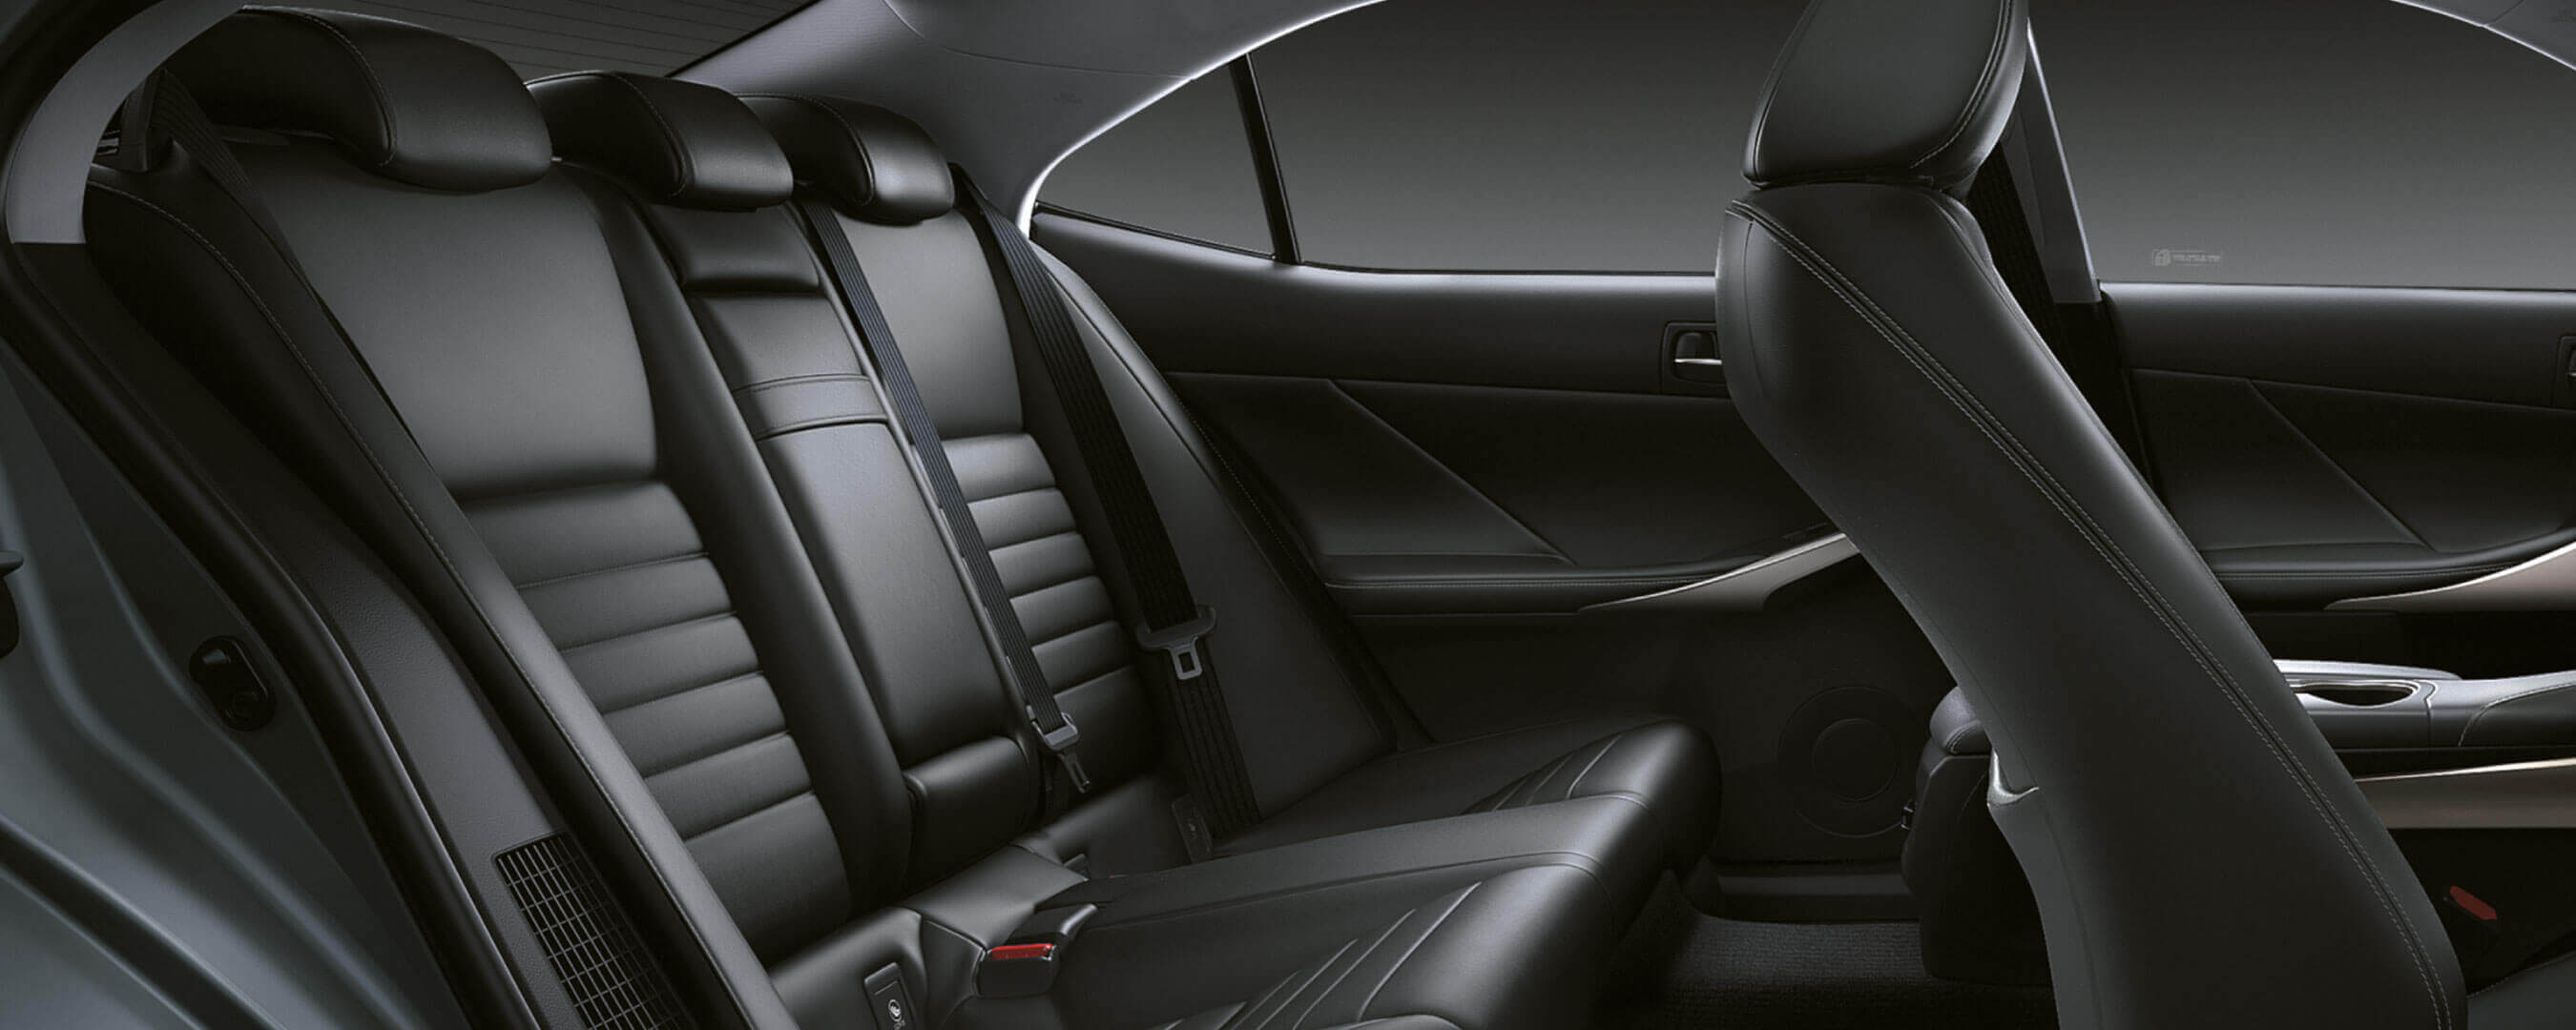 2017 lexus is 300h experience hero interior back